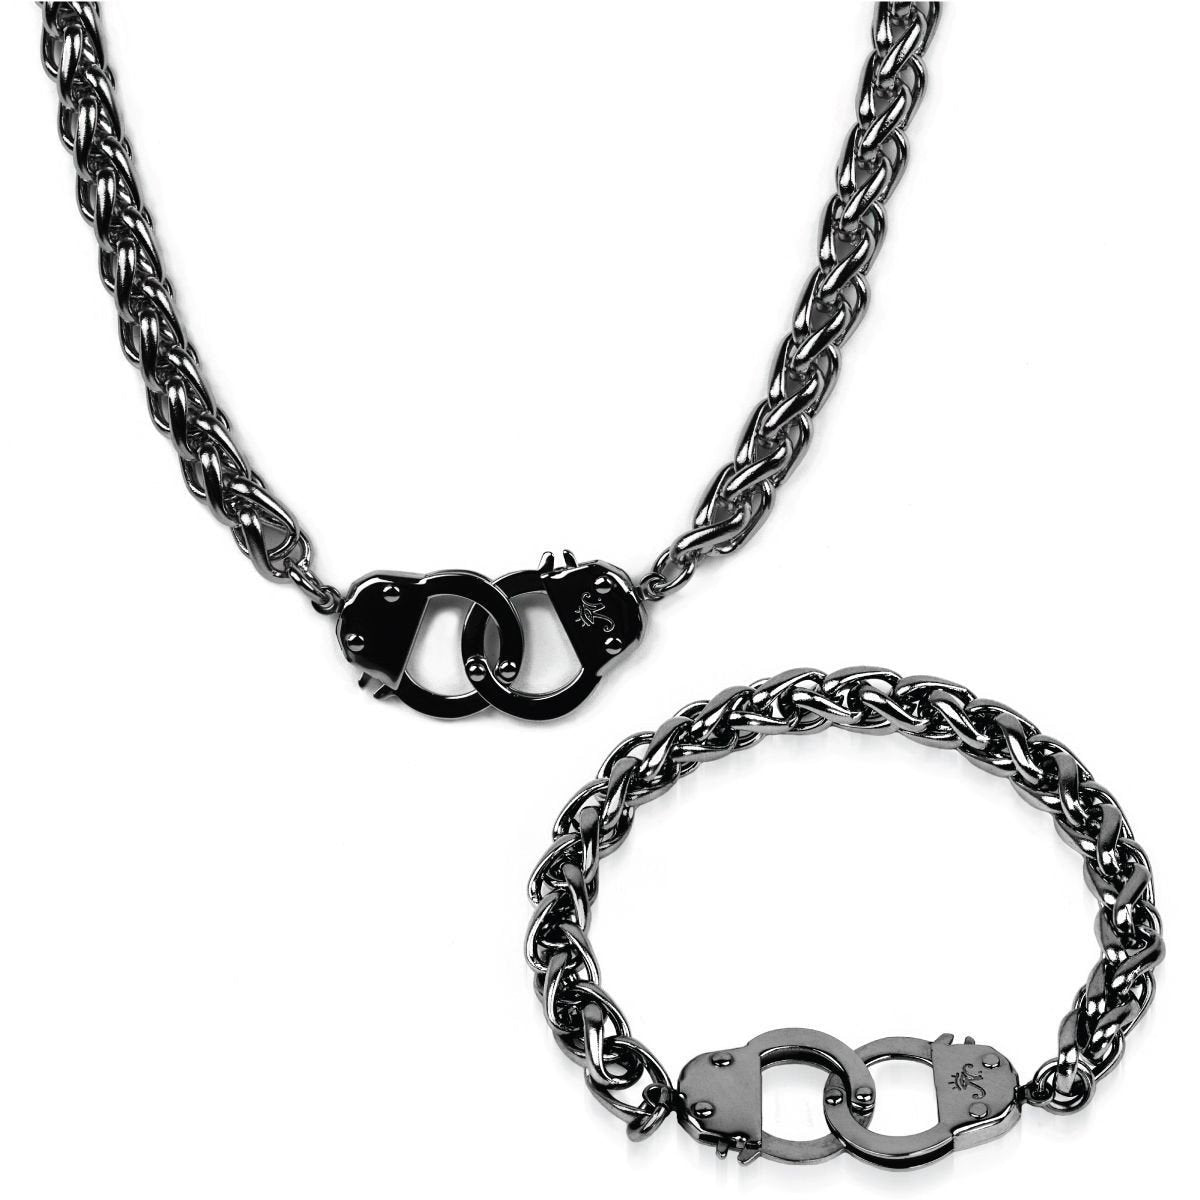 Gunmetal Steel | Chain Cuff Bracelet & Necklace Gift Set